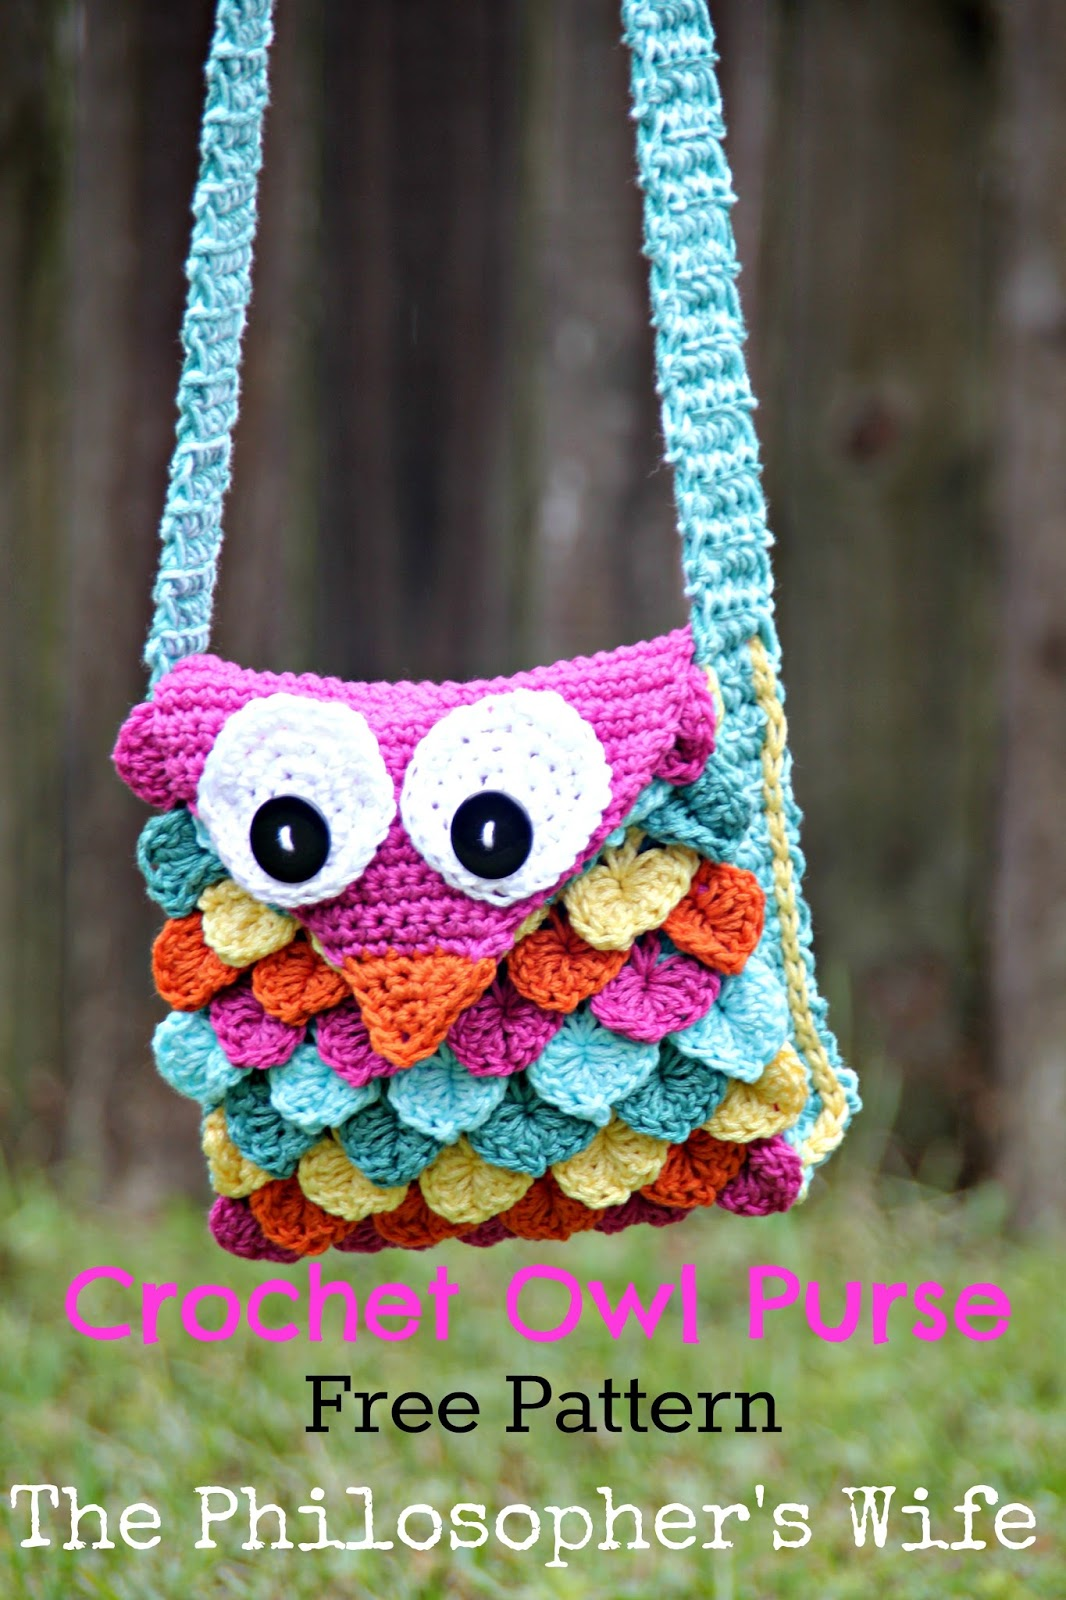 The philosophers wife crochet owl purse free pattern wednesday august 31 2016 bankloansurffo Image collections